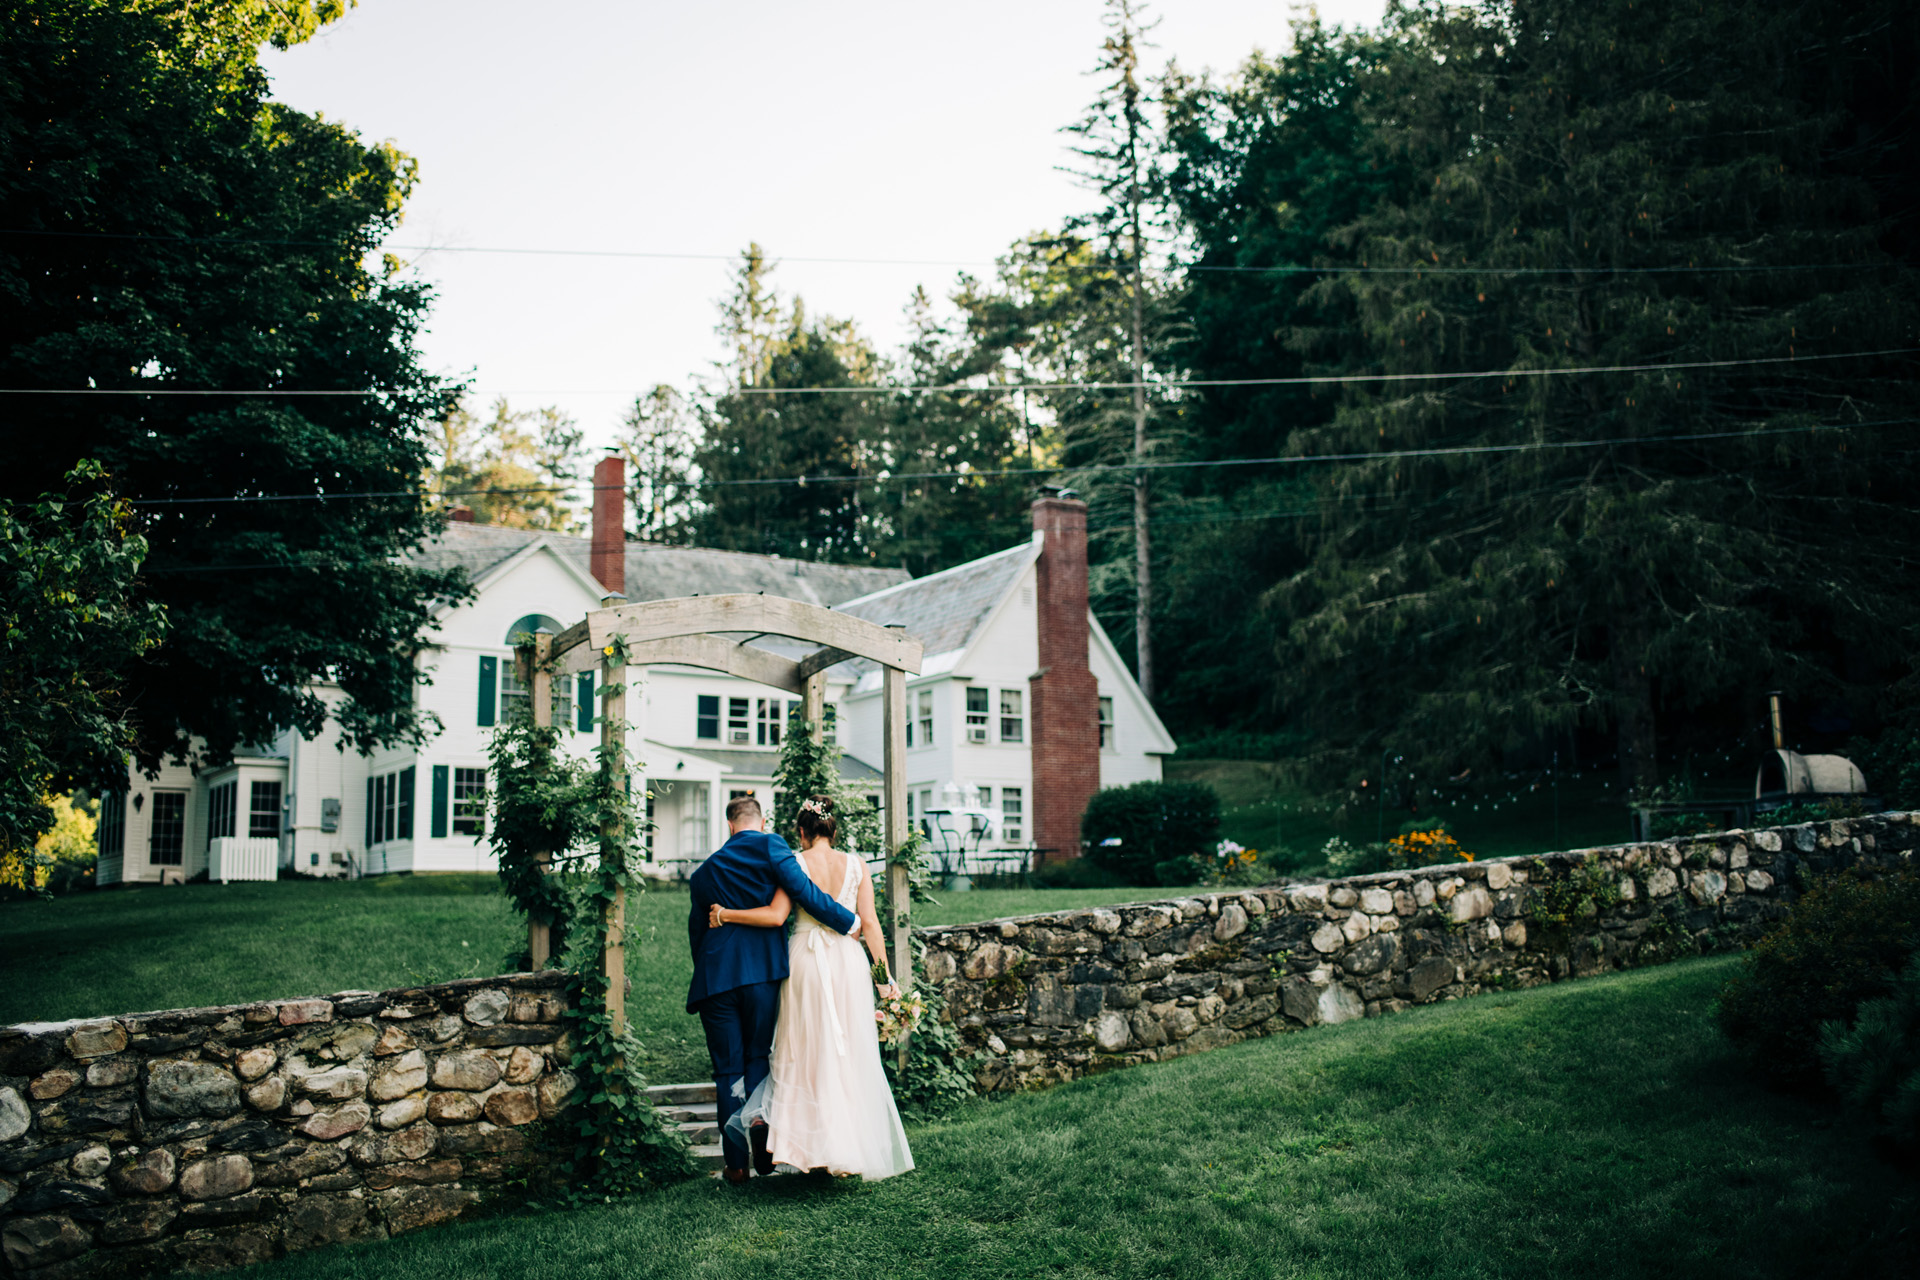 west-mountain-inn-wedding-photographer-44